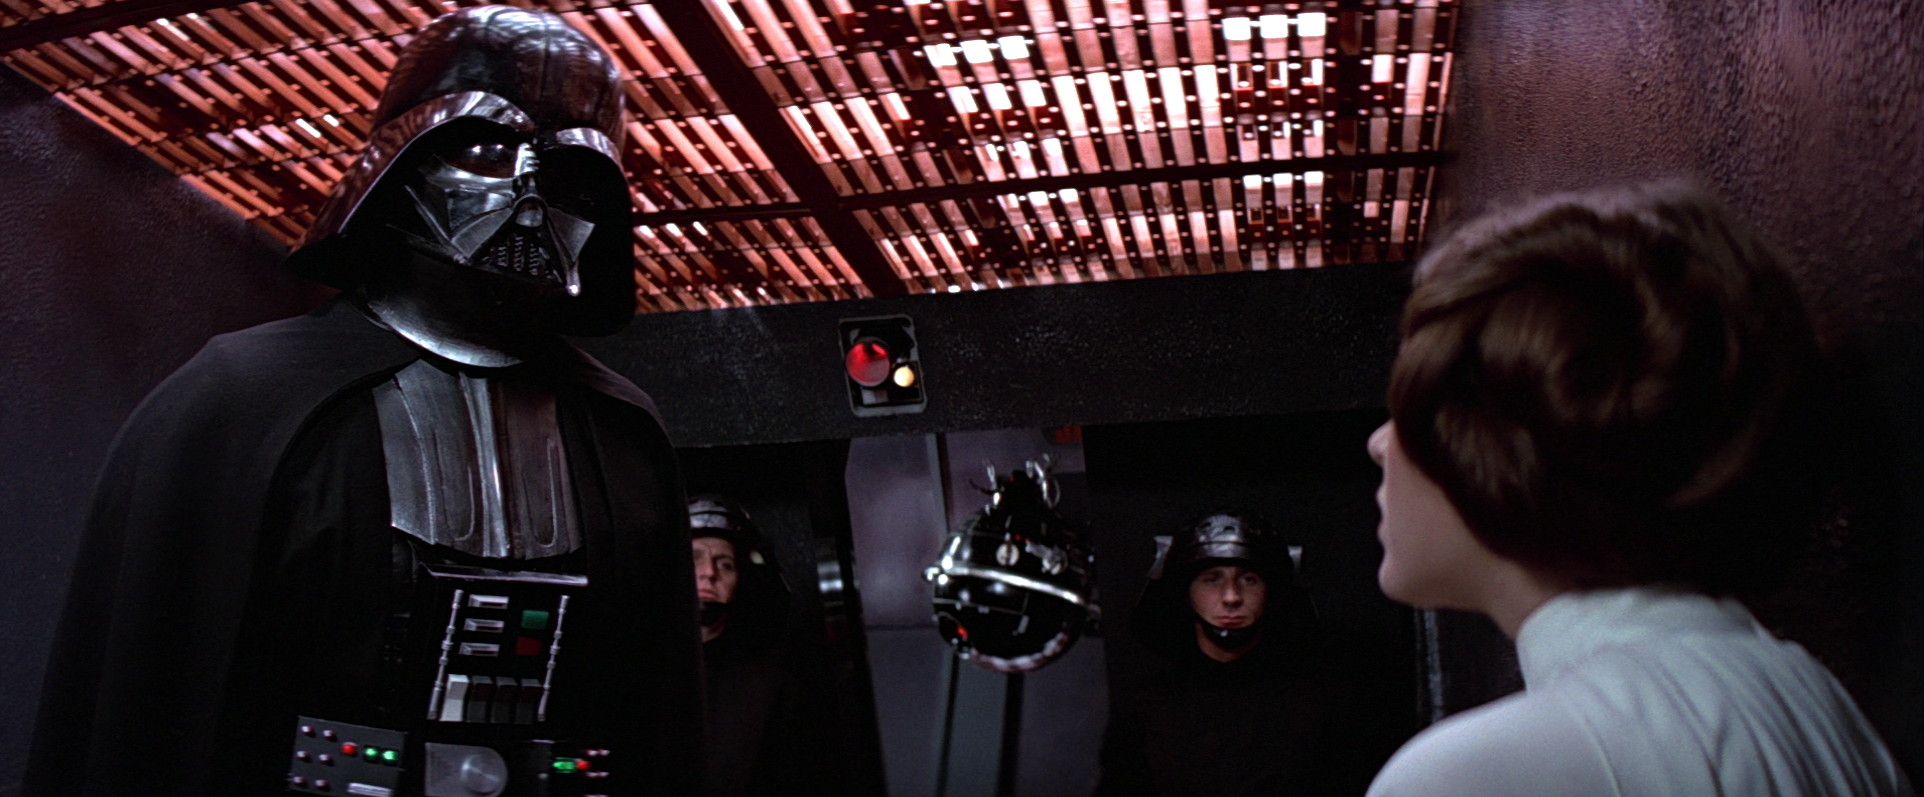 Vader using an interrogation droid on Leia